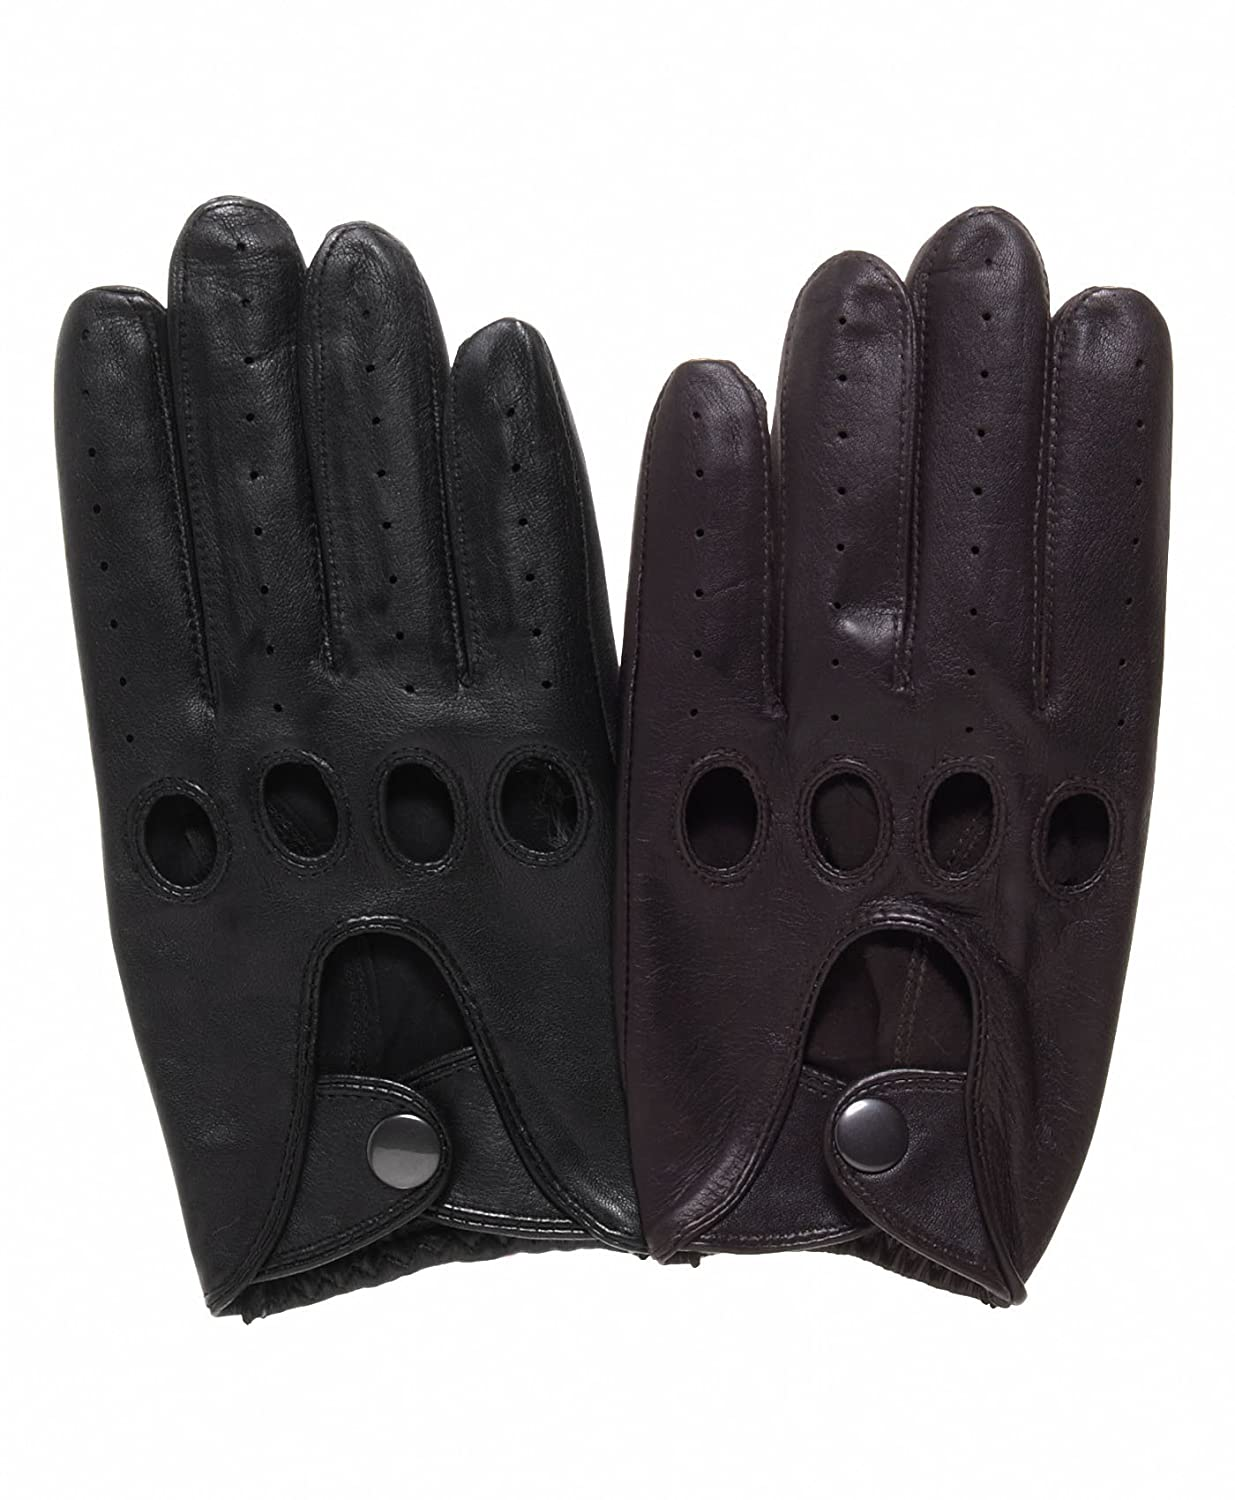 Honda leather driving gloves - Pratt And Hart Traditional Leather Driving Gloves Size S Color Black At Amazon Men S Clothing Store Cold Weather Gloves